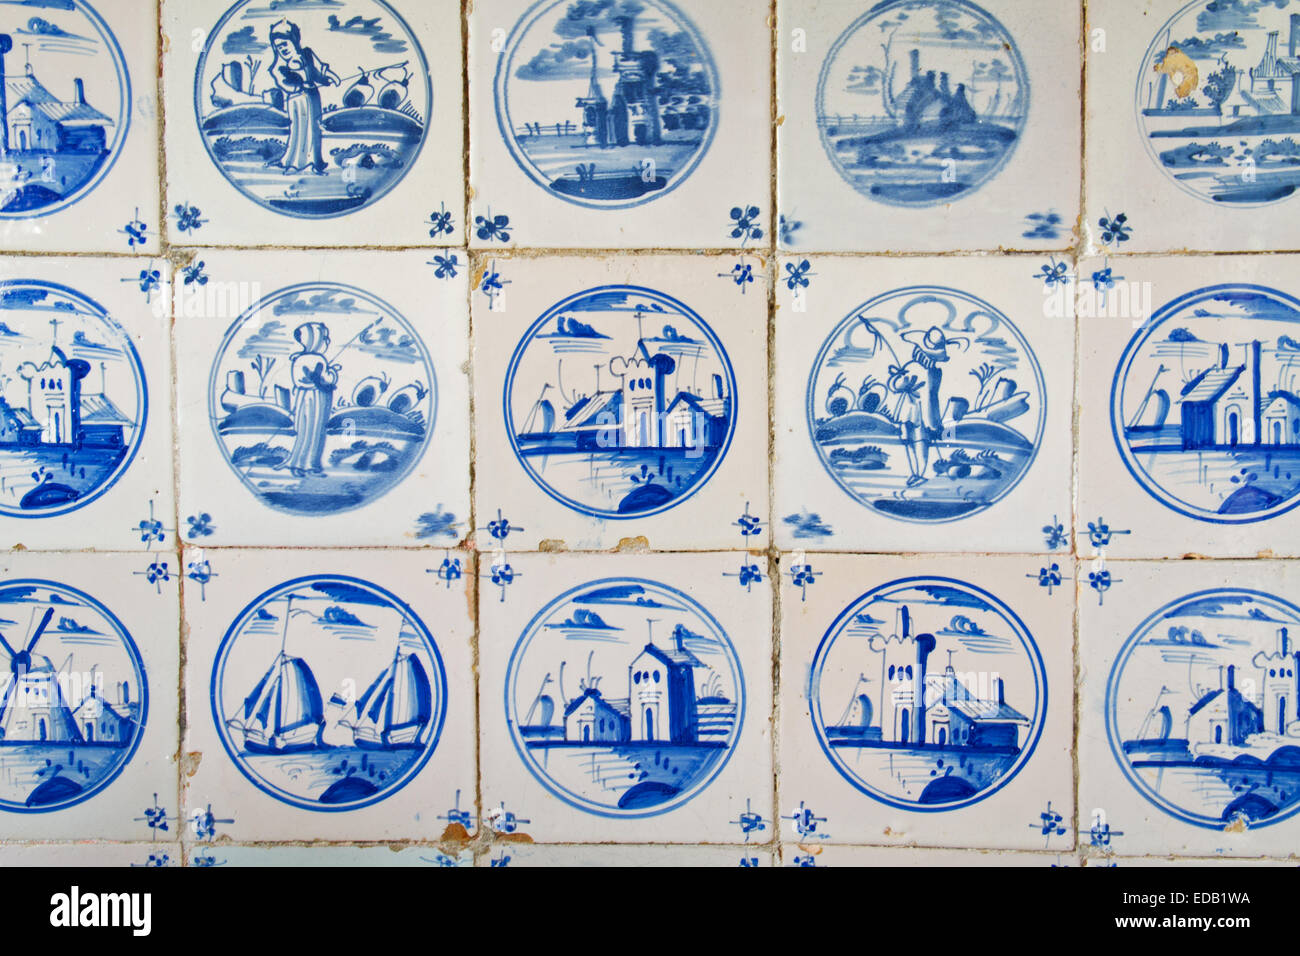 Antique Dutch Tiles On The Kitchen Wall Of An Old Building Stock Photo Alamy